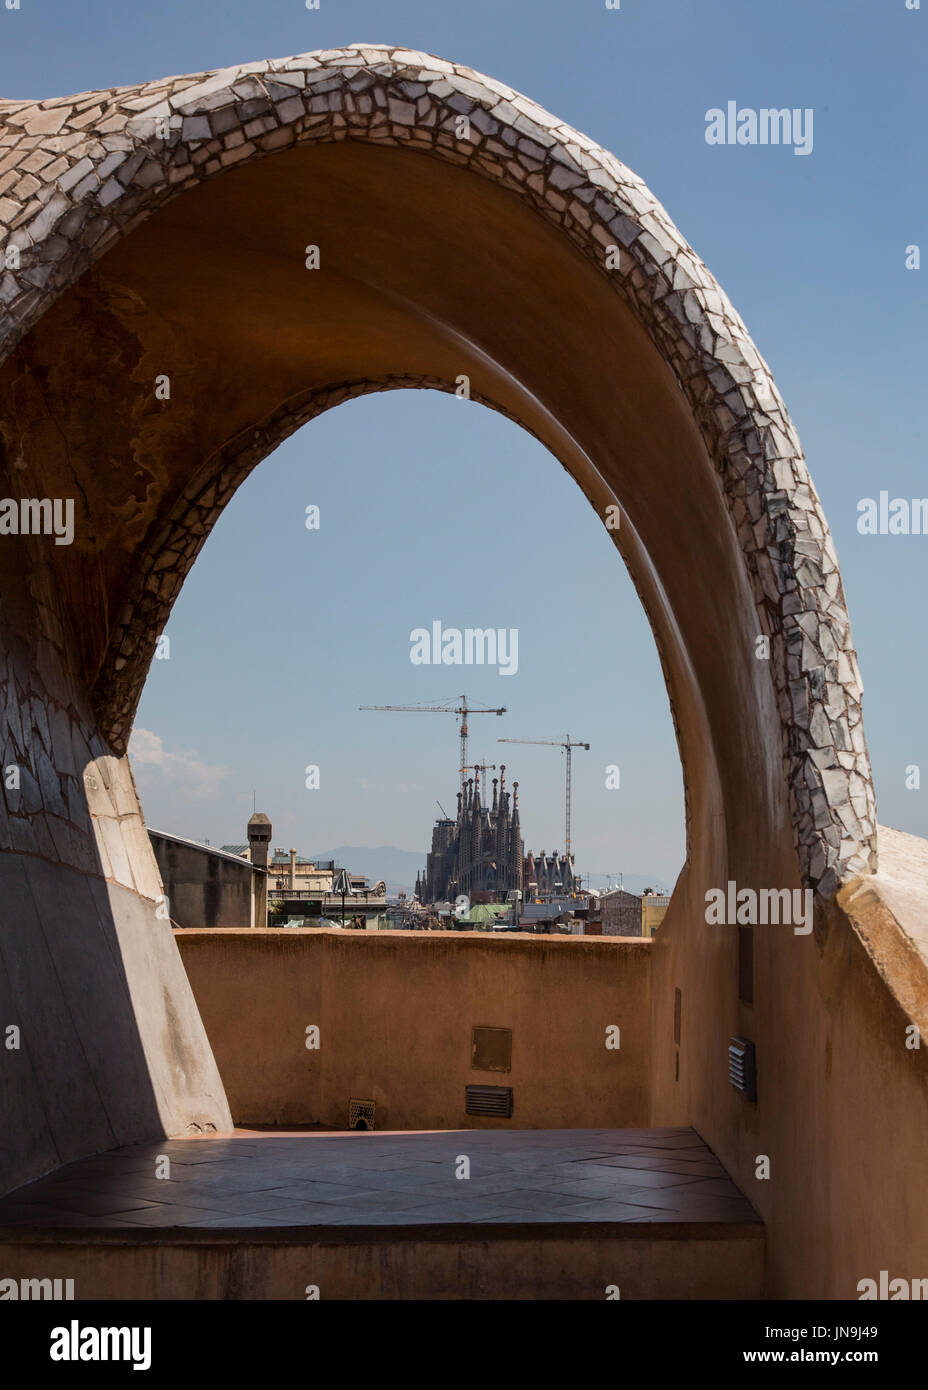 the unfinished Sagrada Familia cathedral designed by Gaudi seen through an archway on the roof of Casa Mila, or Stock Photo